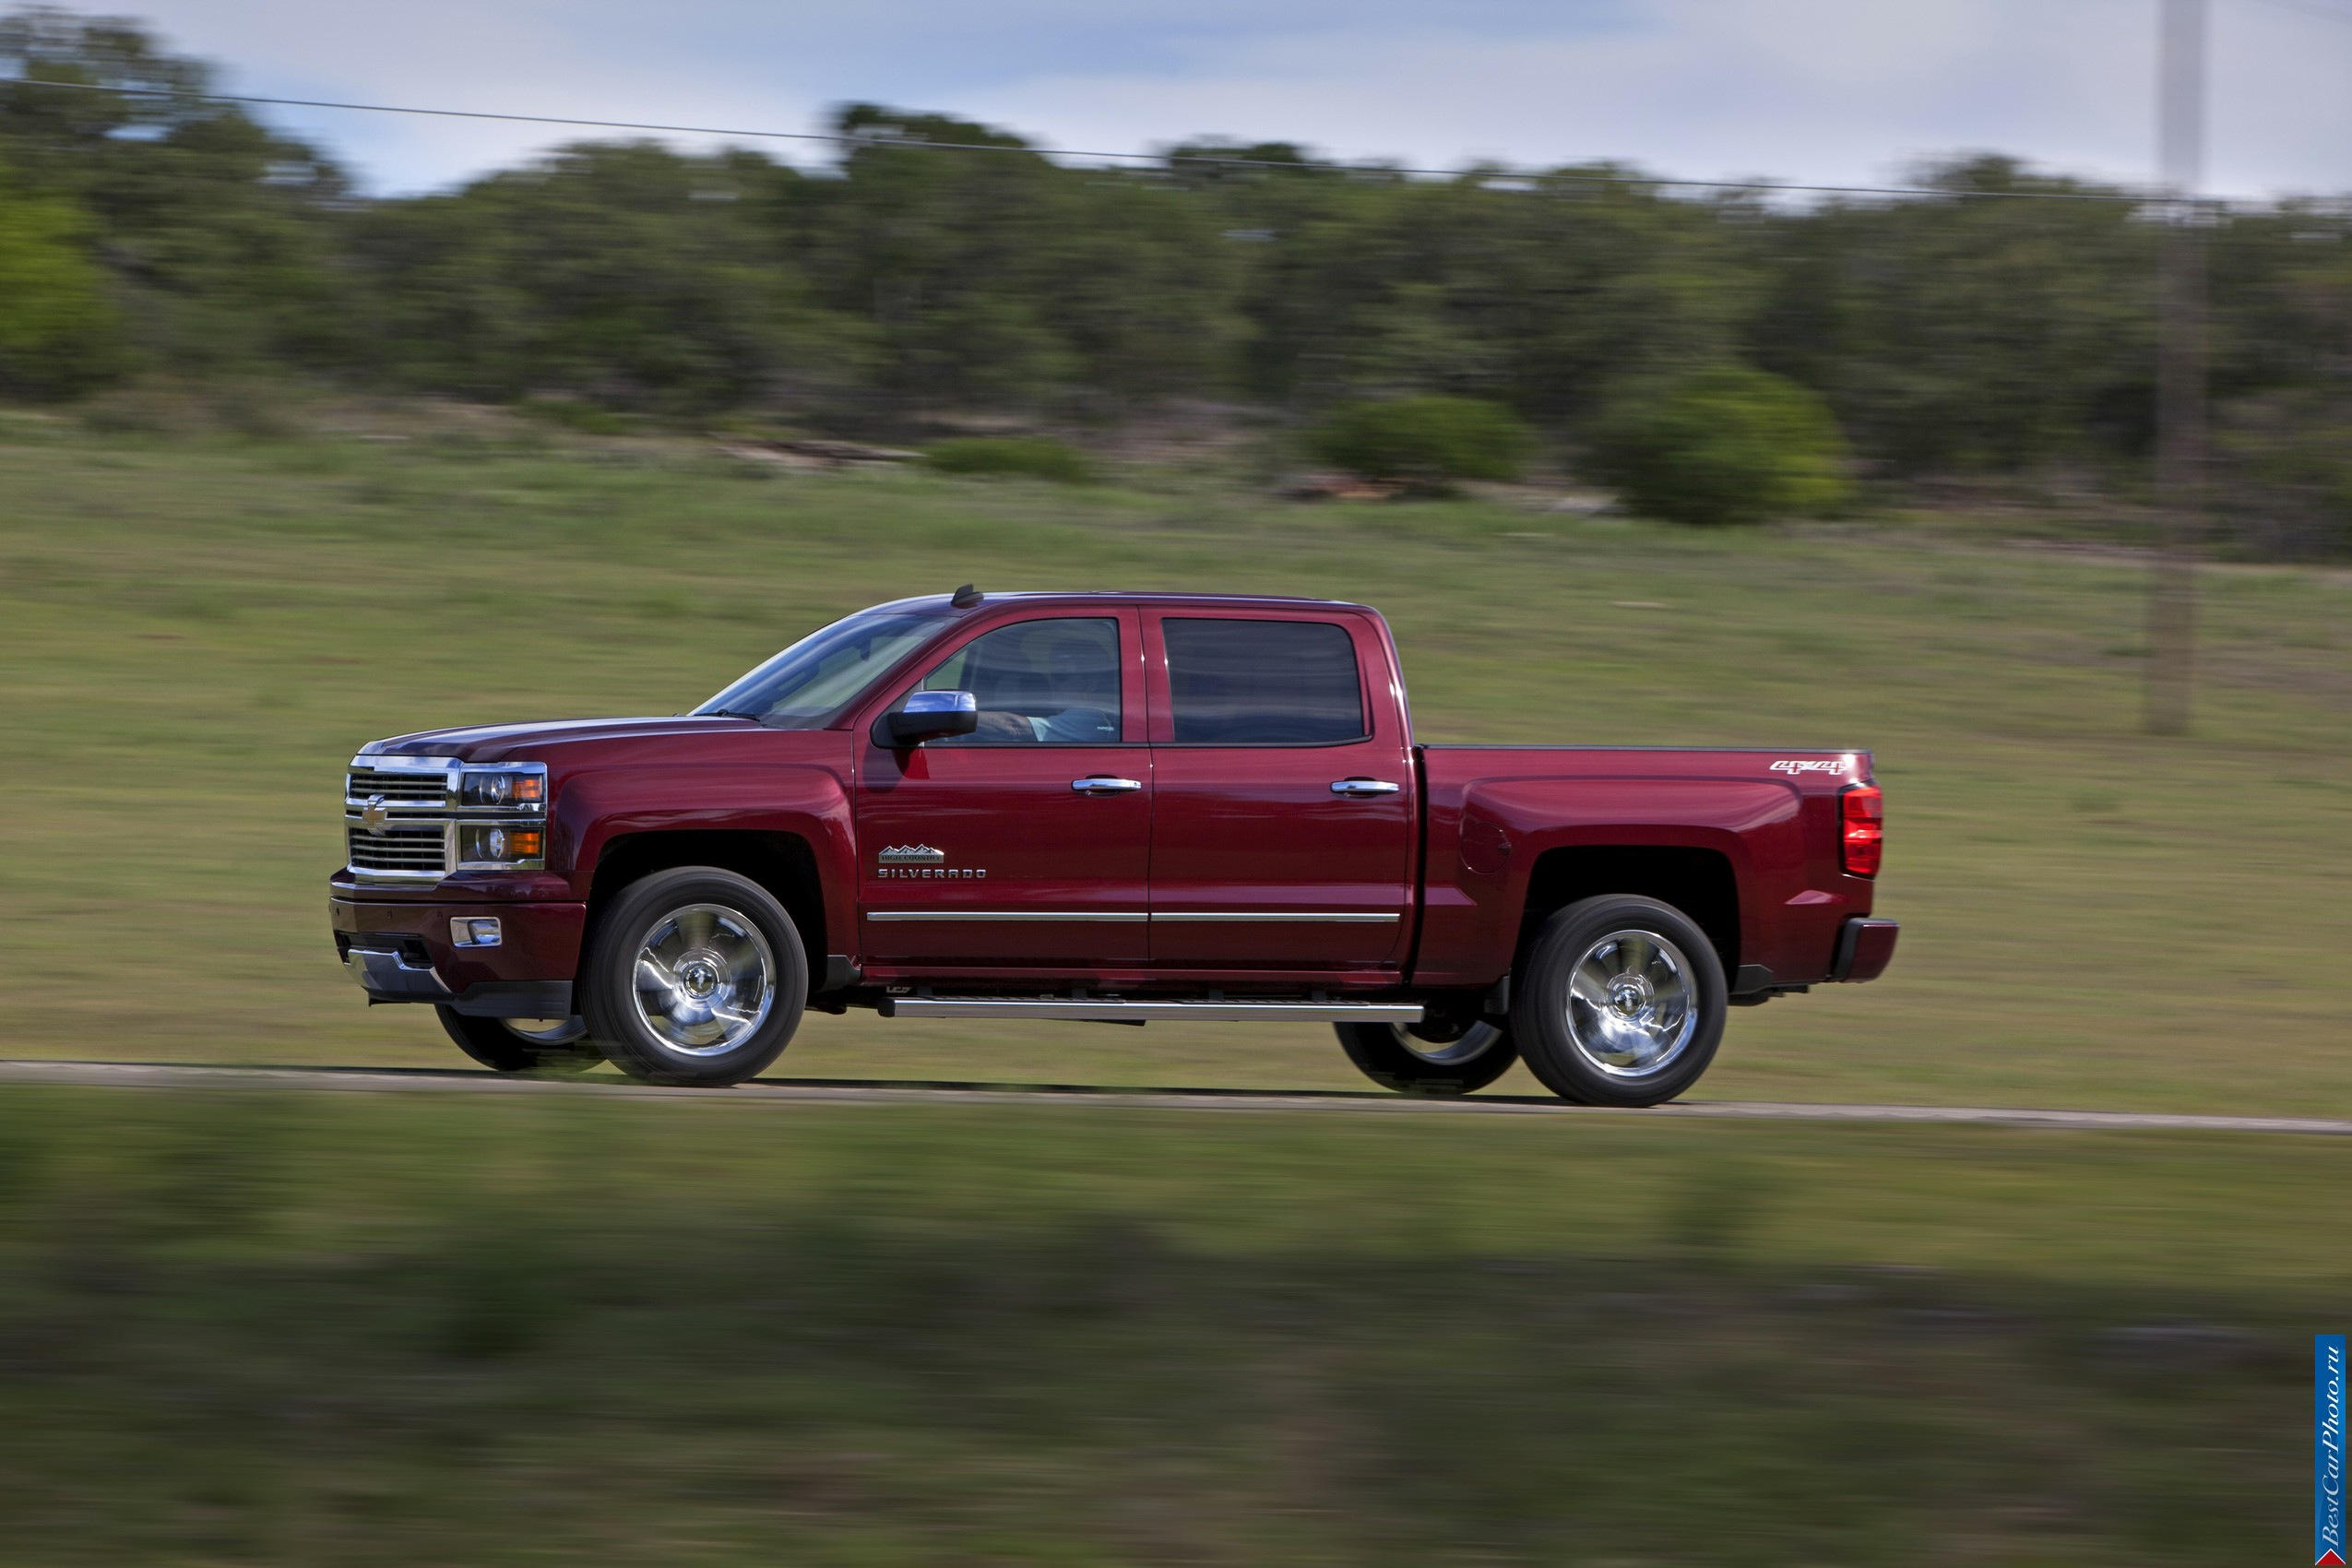 2019 Chevrolet Silverado High Country photo - 3